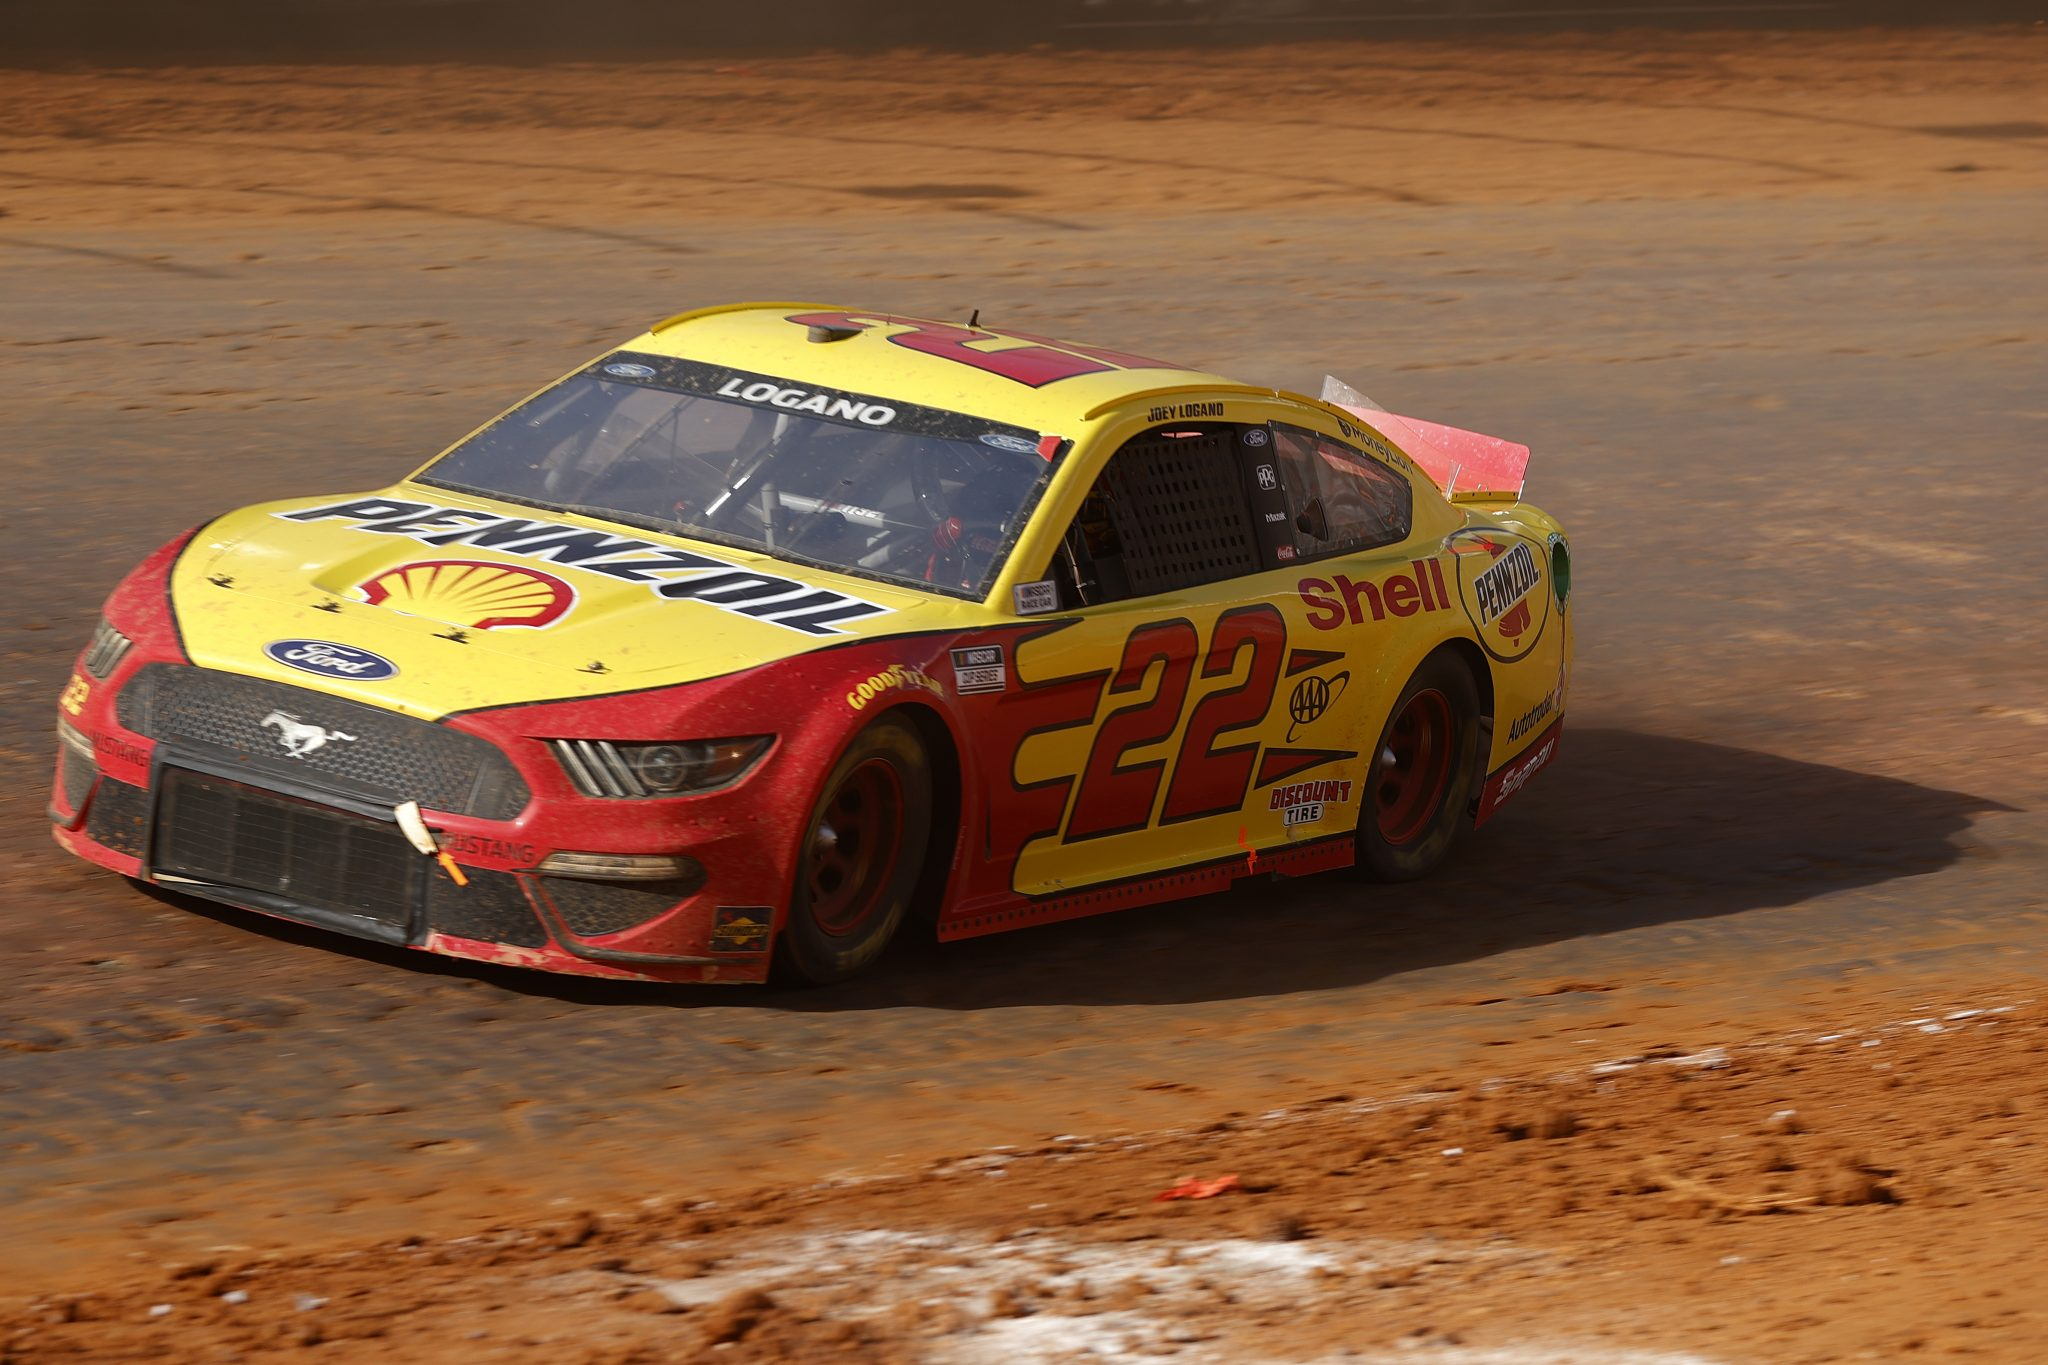 BRISTOL, TENNESSEE - MARCH 29: Joey Logano, driver of the #22 Shell Pennzoil Ford, drives during the NASCAR Cup Series Food City Dirt Race at Bristol Motor Speedway on March 29, 2021 in Bristol, Tennessee. (Photo by Chris Graythen/Getty Images) | Getty Images